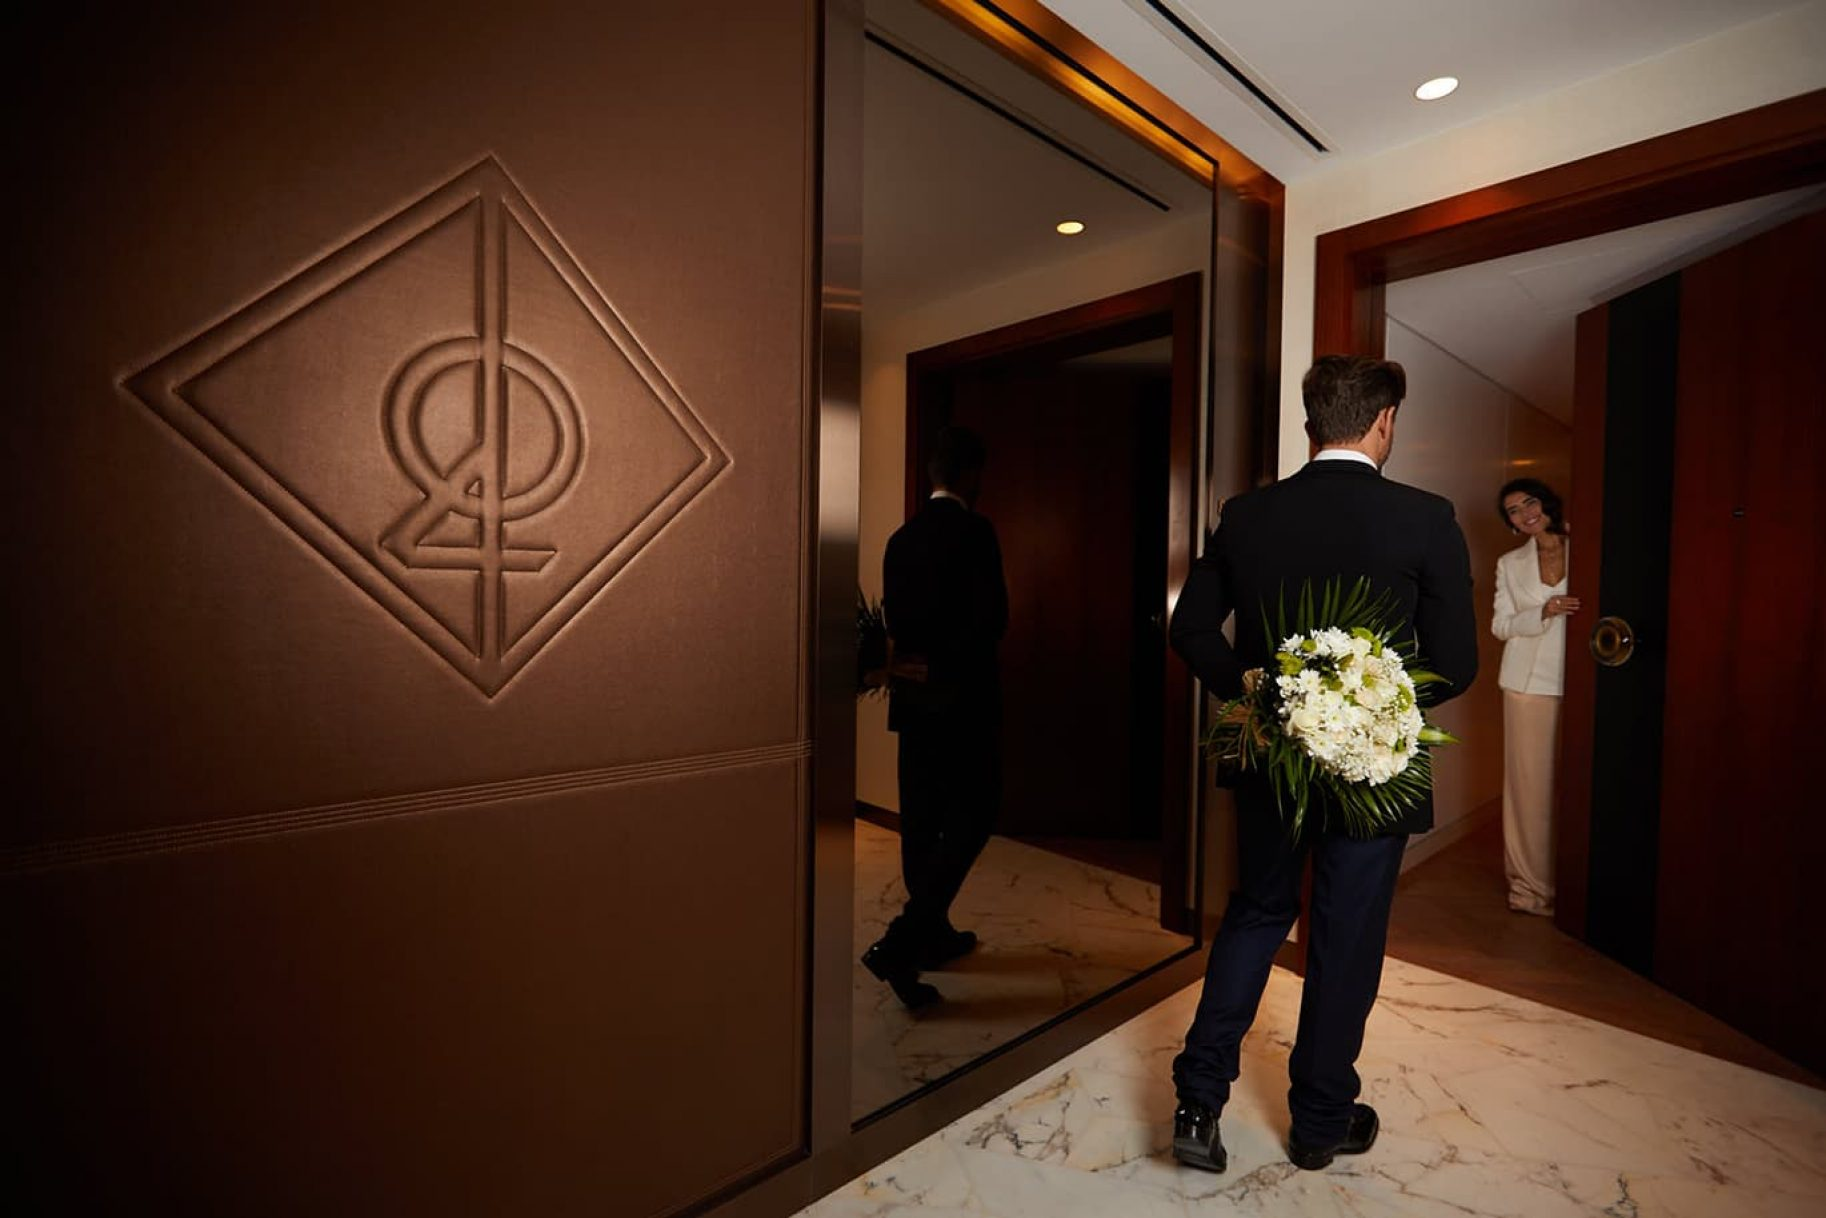 A man hides a bunch of flowers behind his back as a woman opens the door to her luxury apartment